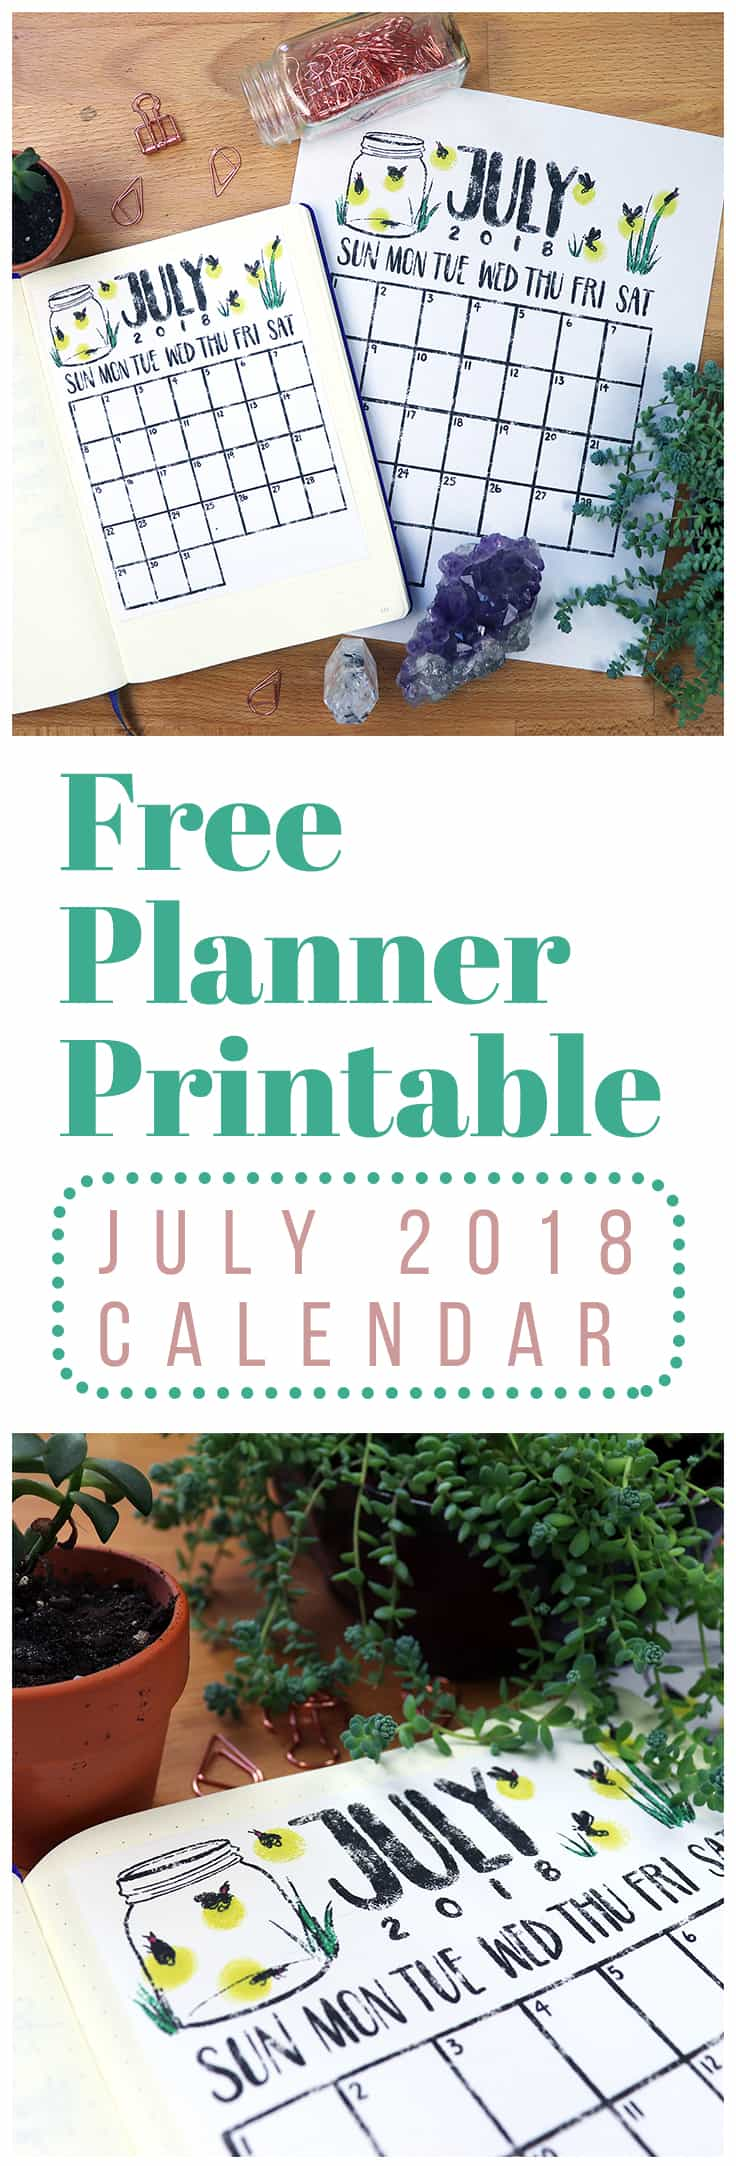 Ready to get your planning on? Download this cute and FREE July 2018 calendar printable and kick your planner into overdrive! This monthly printable comes in four different versions so you can find something that fits your needs perfectly. So whether you've got a bullet journal, binder, traveler's notebook, or something totally different, this July 2018 calendar printable is for you!